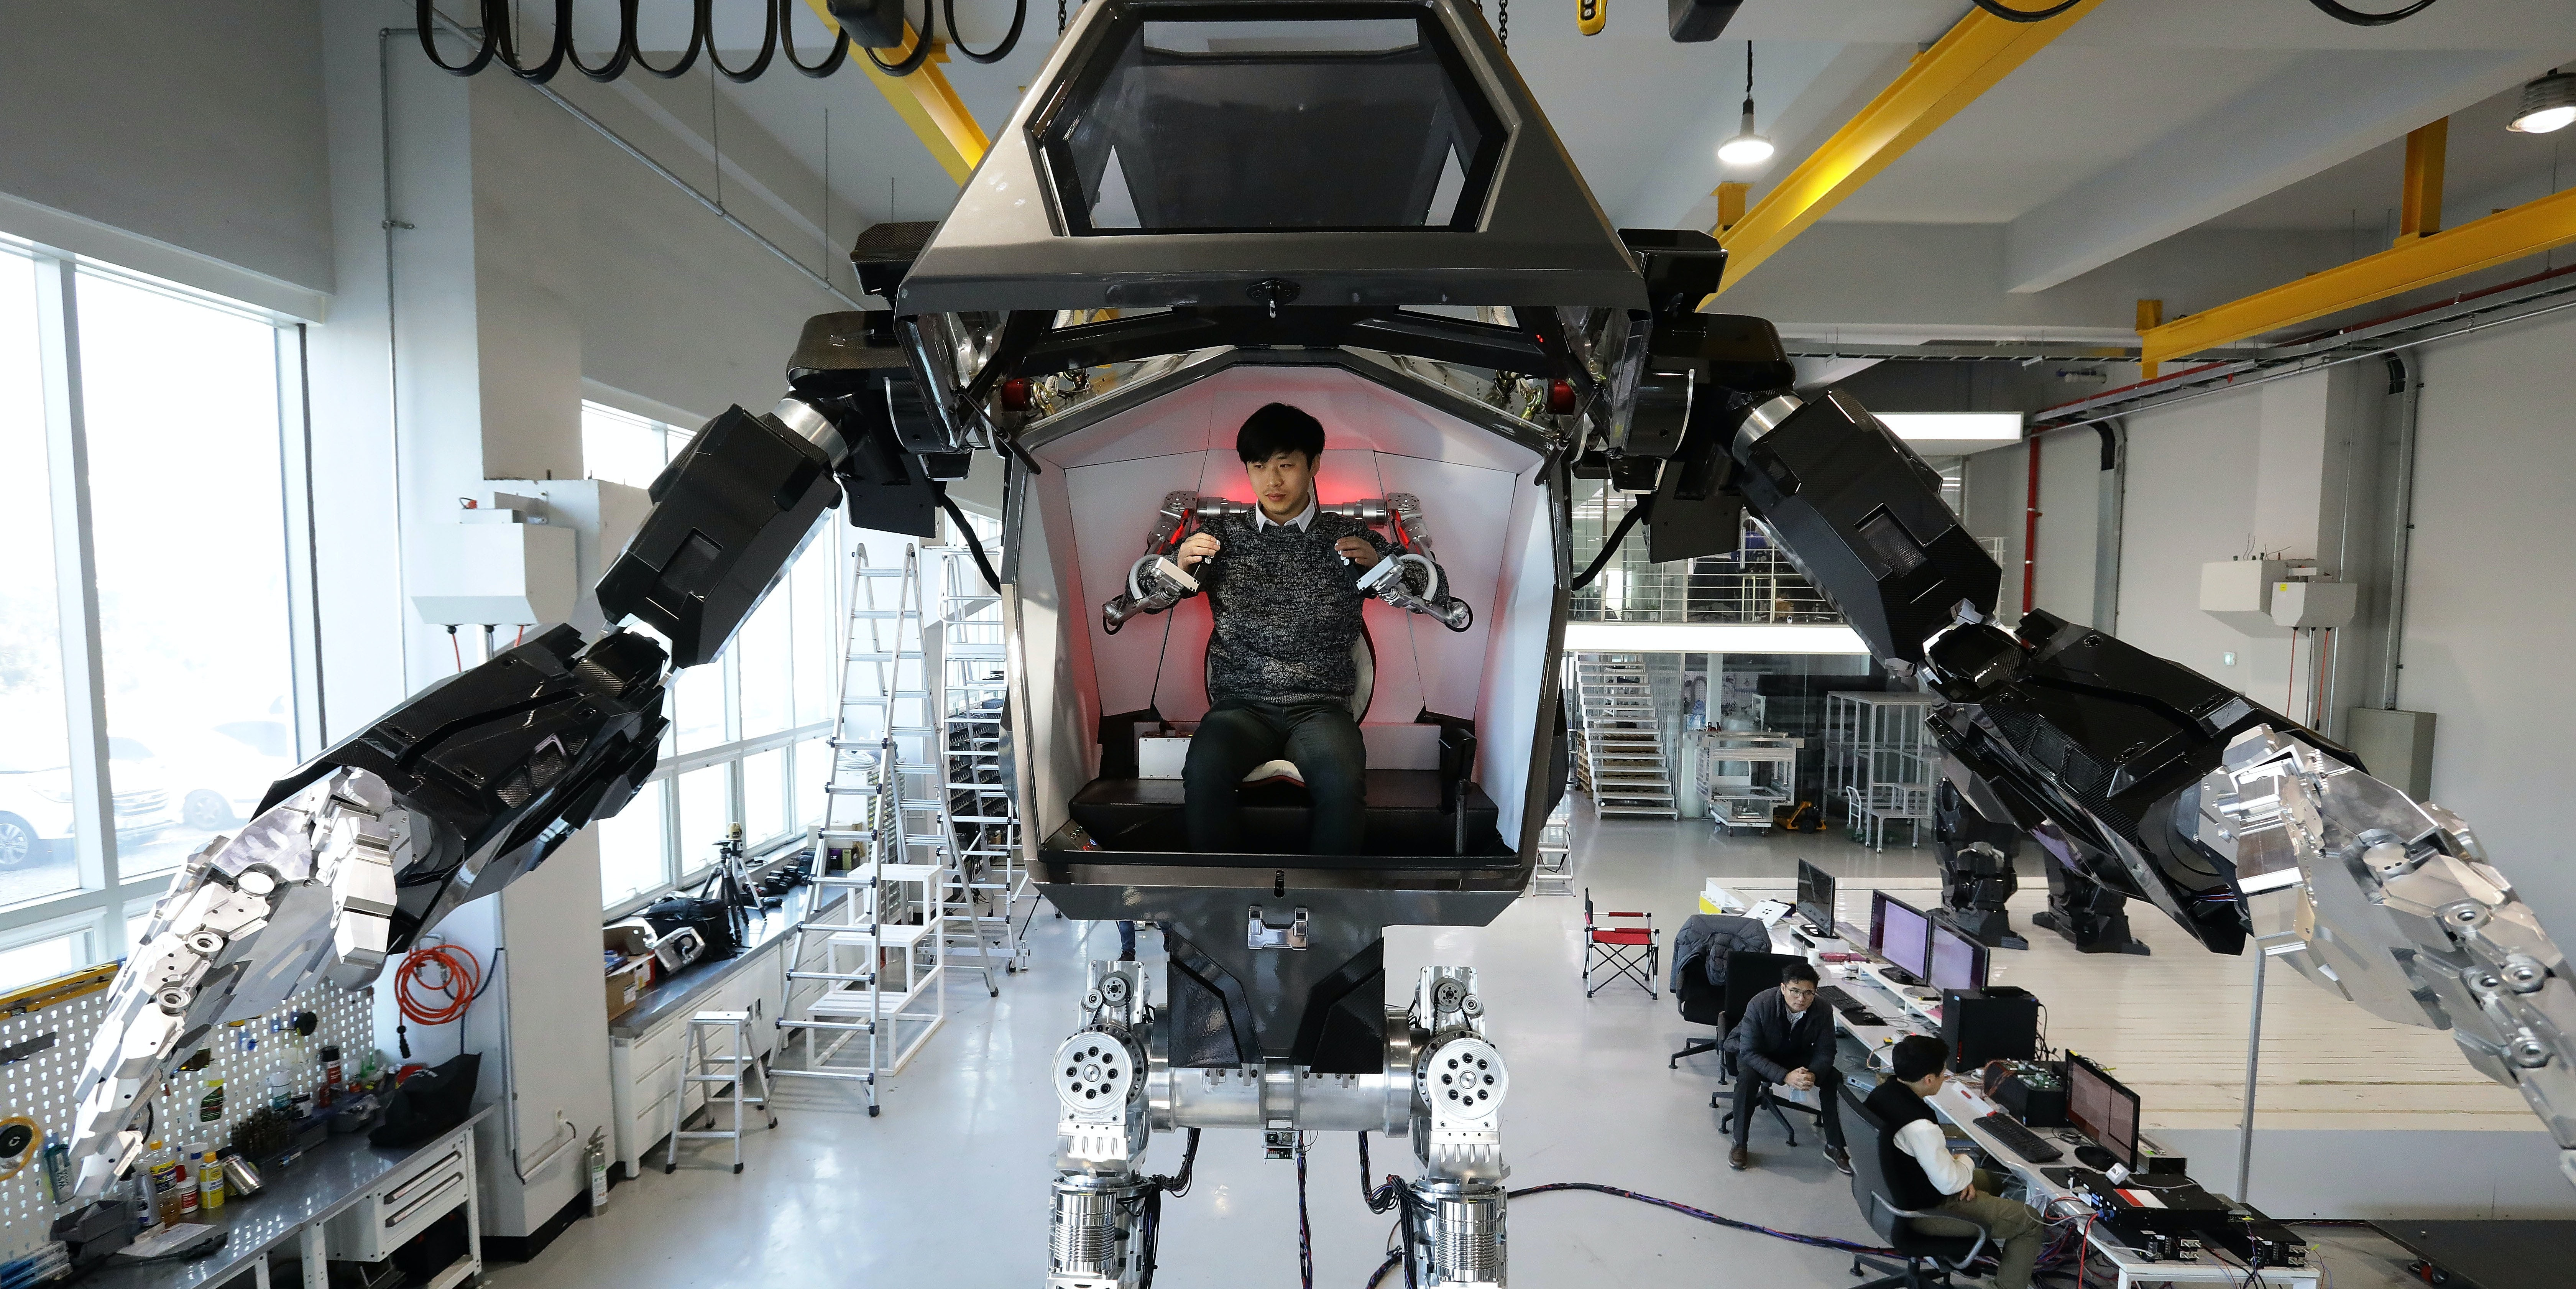 GUNPO, SOUTH KOREA - DECEMBER 27:  Testing South Korea's manned walking robot 'Method-2' projects by Korea Future Technology on December 27, 2016 in Gunpo, South Korea. Seoul-based robotics company Korea Future Technology has built a robot named Method-2, which can be controlled by a human pilot by using arm gestures.  (Photo by Chung Sung-Jun/Getty Images)